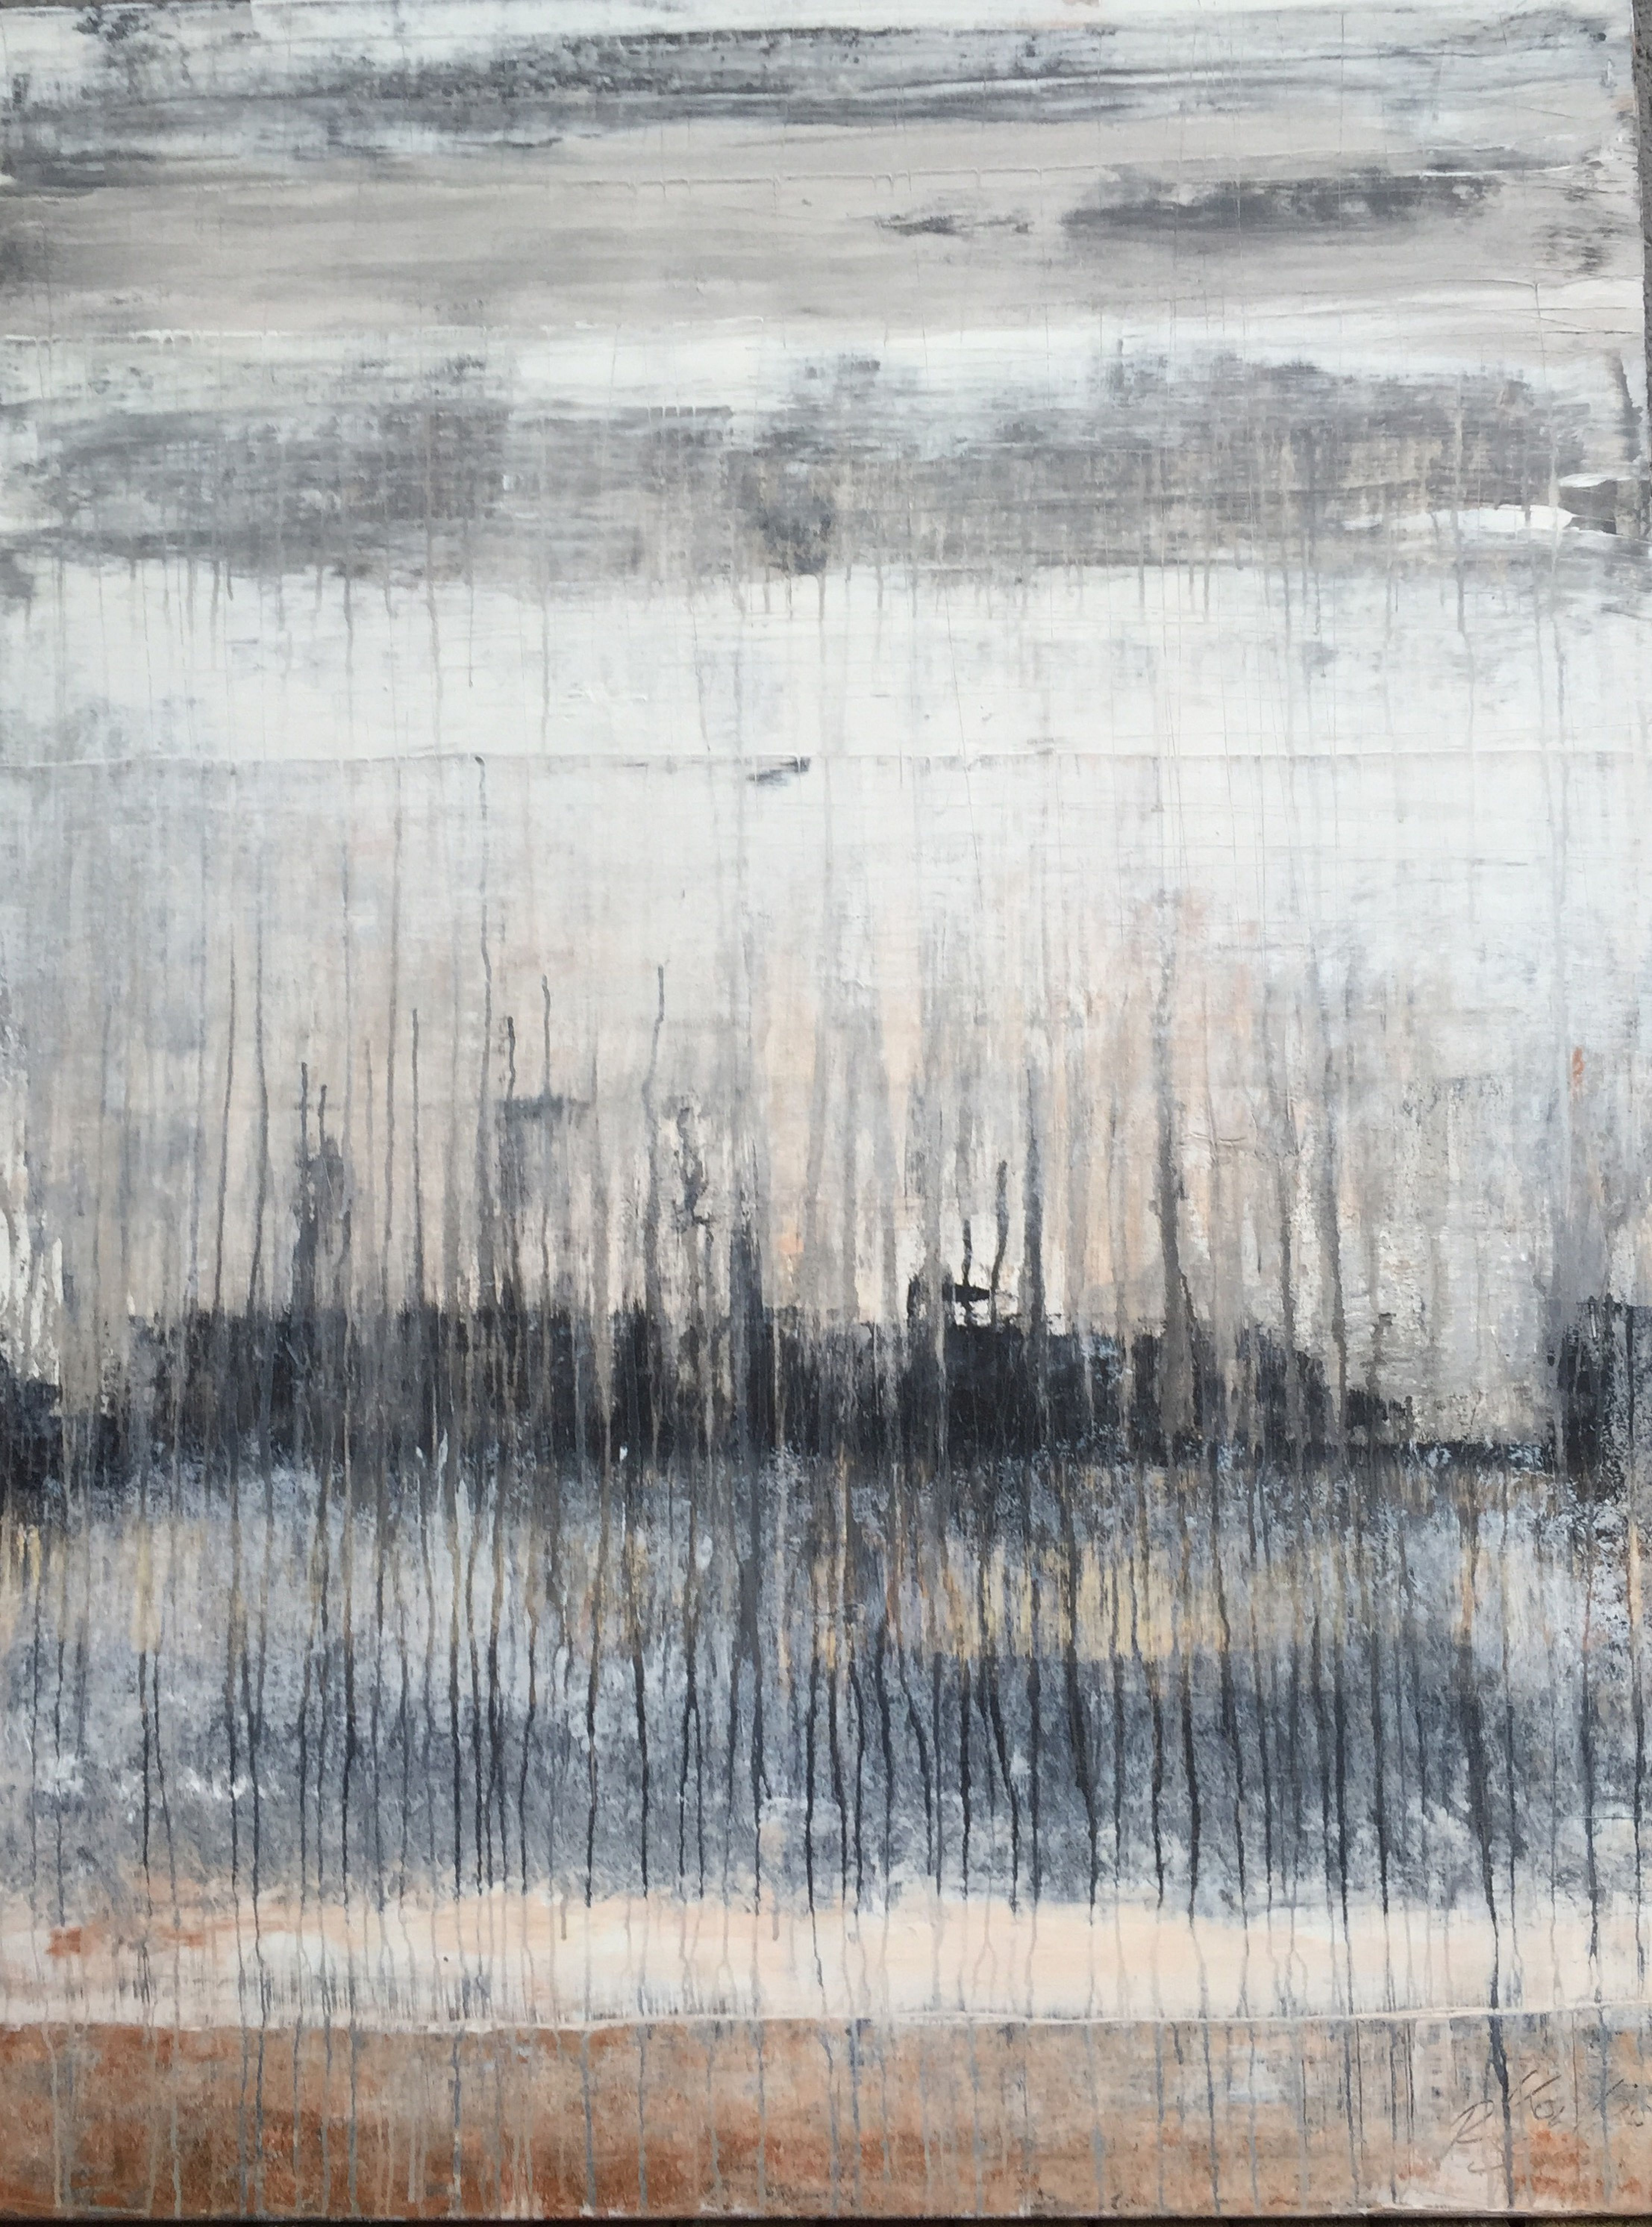 S 3 Abstract Exclusive Gray artwork by Roger Koenig - art listed for sale on Artplode